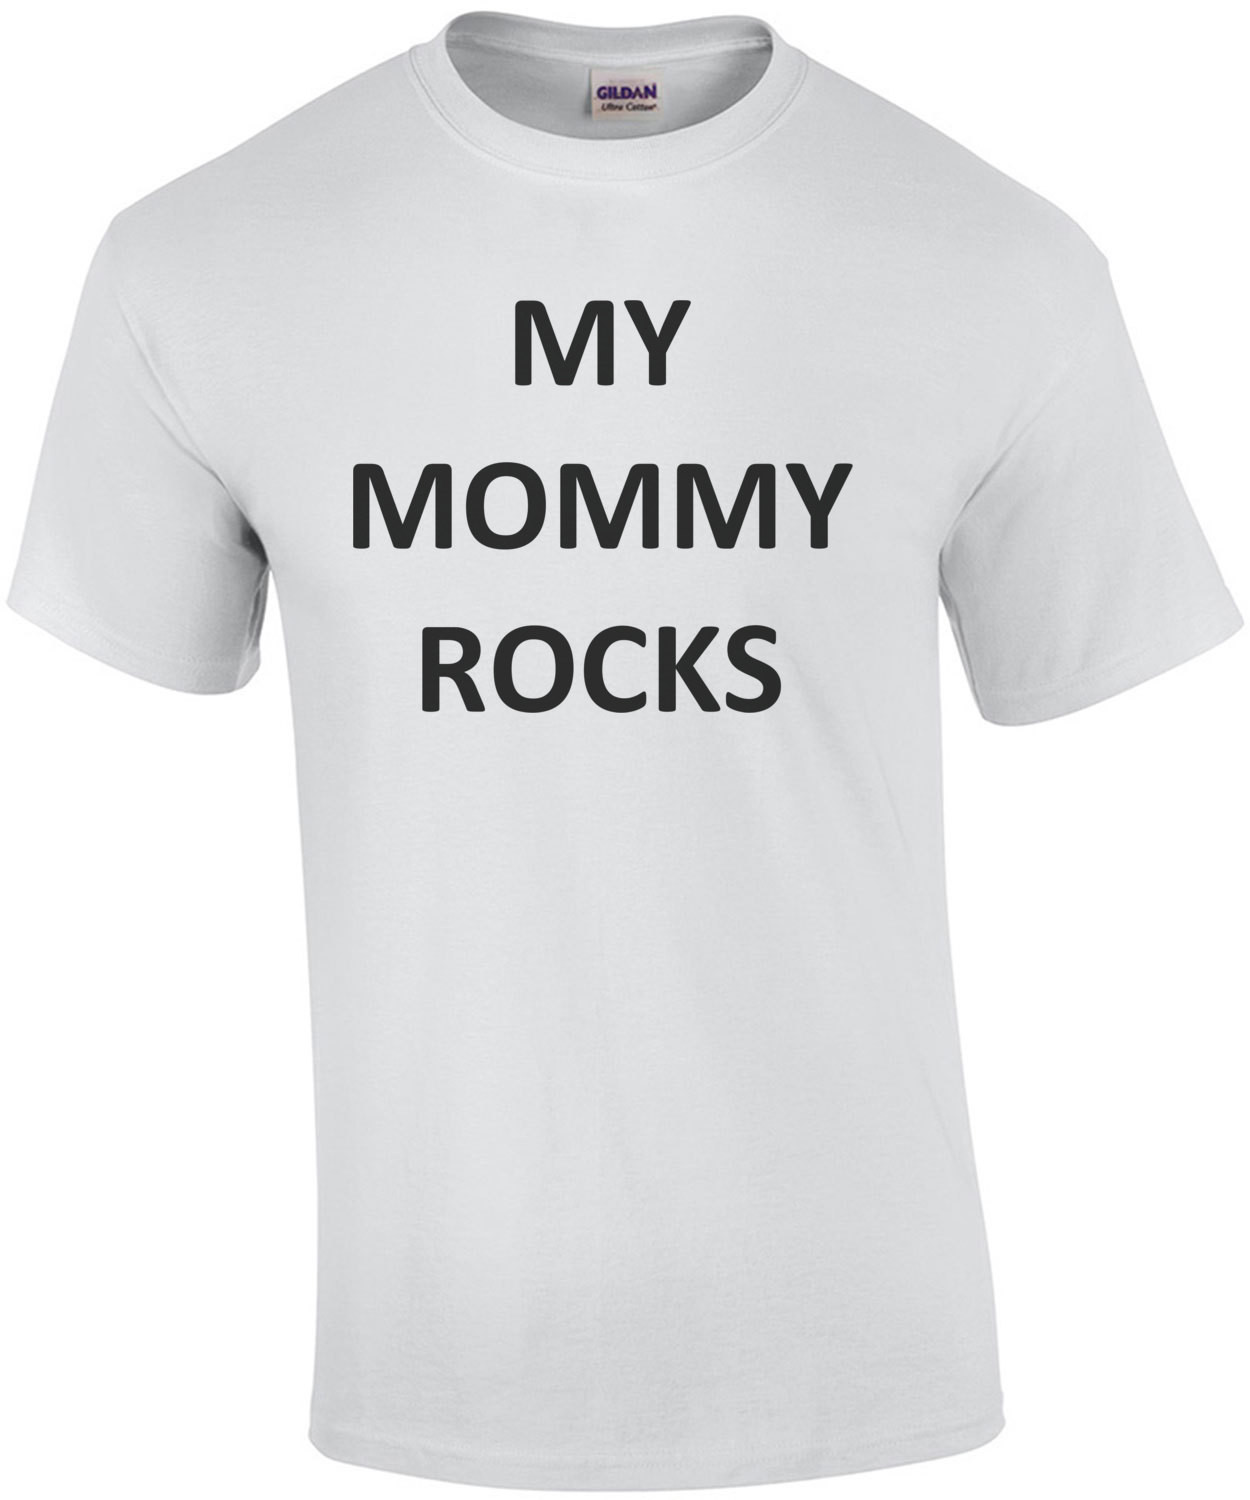 My Mommy Rocks Shirt